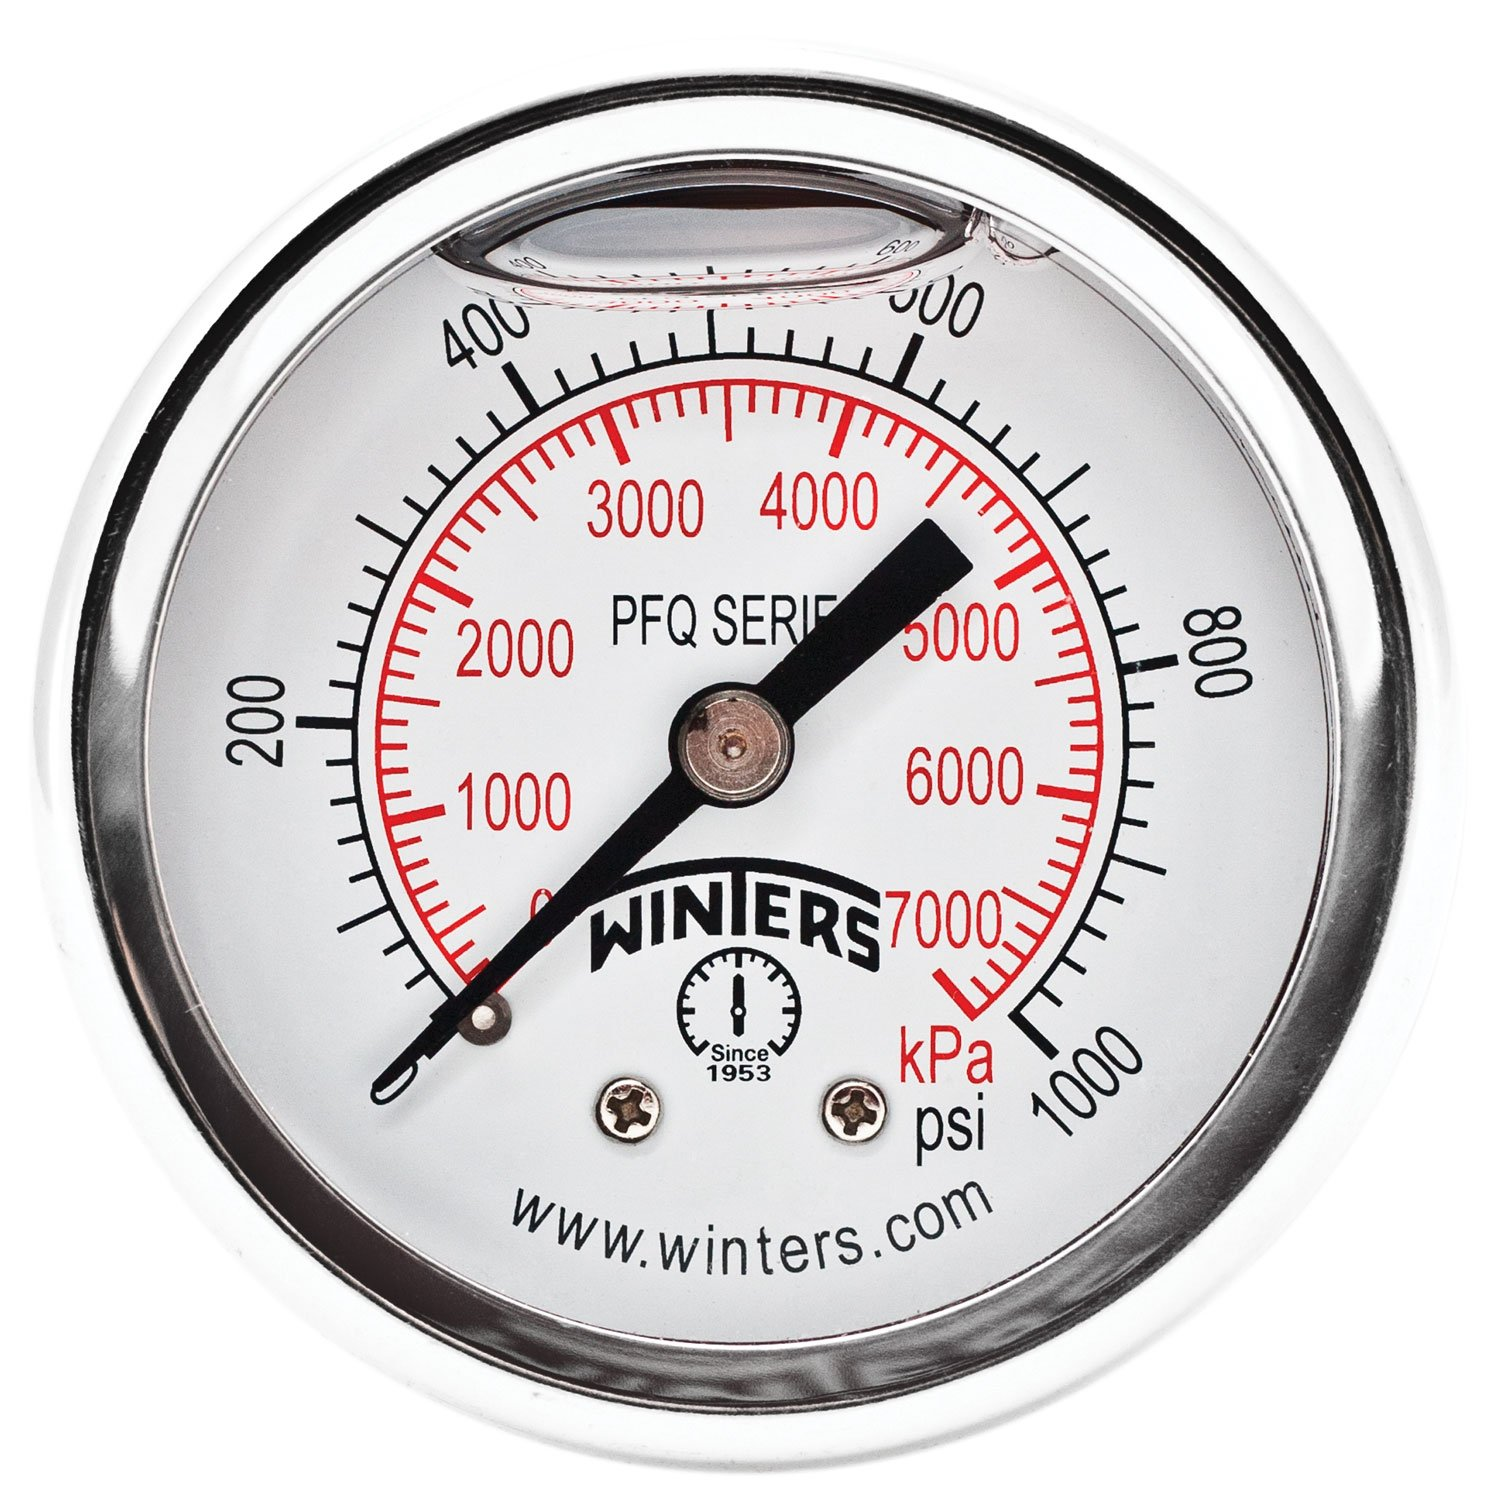 """Winters PFQ Series Stainless Steel 304 Dual Scale Liquid Filled Pressure Gauge with Brass Internals, 0-1000 psi/kpa, 2"""" Dial Display, +/-2.5% Accuracy, 1/4"""" NPT Back Mount"""